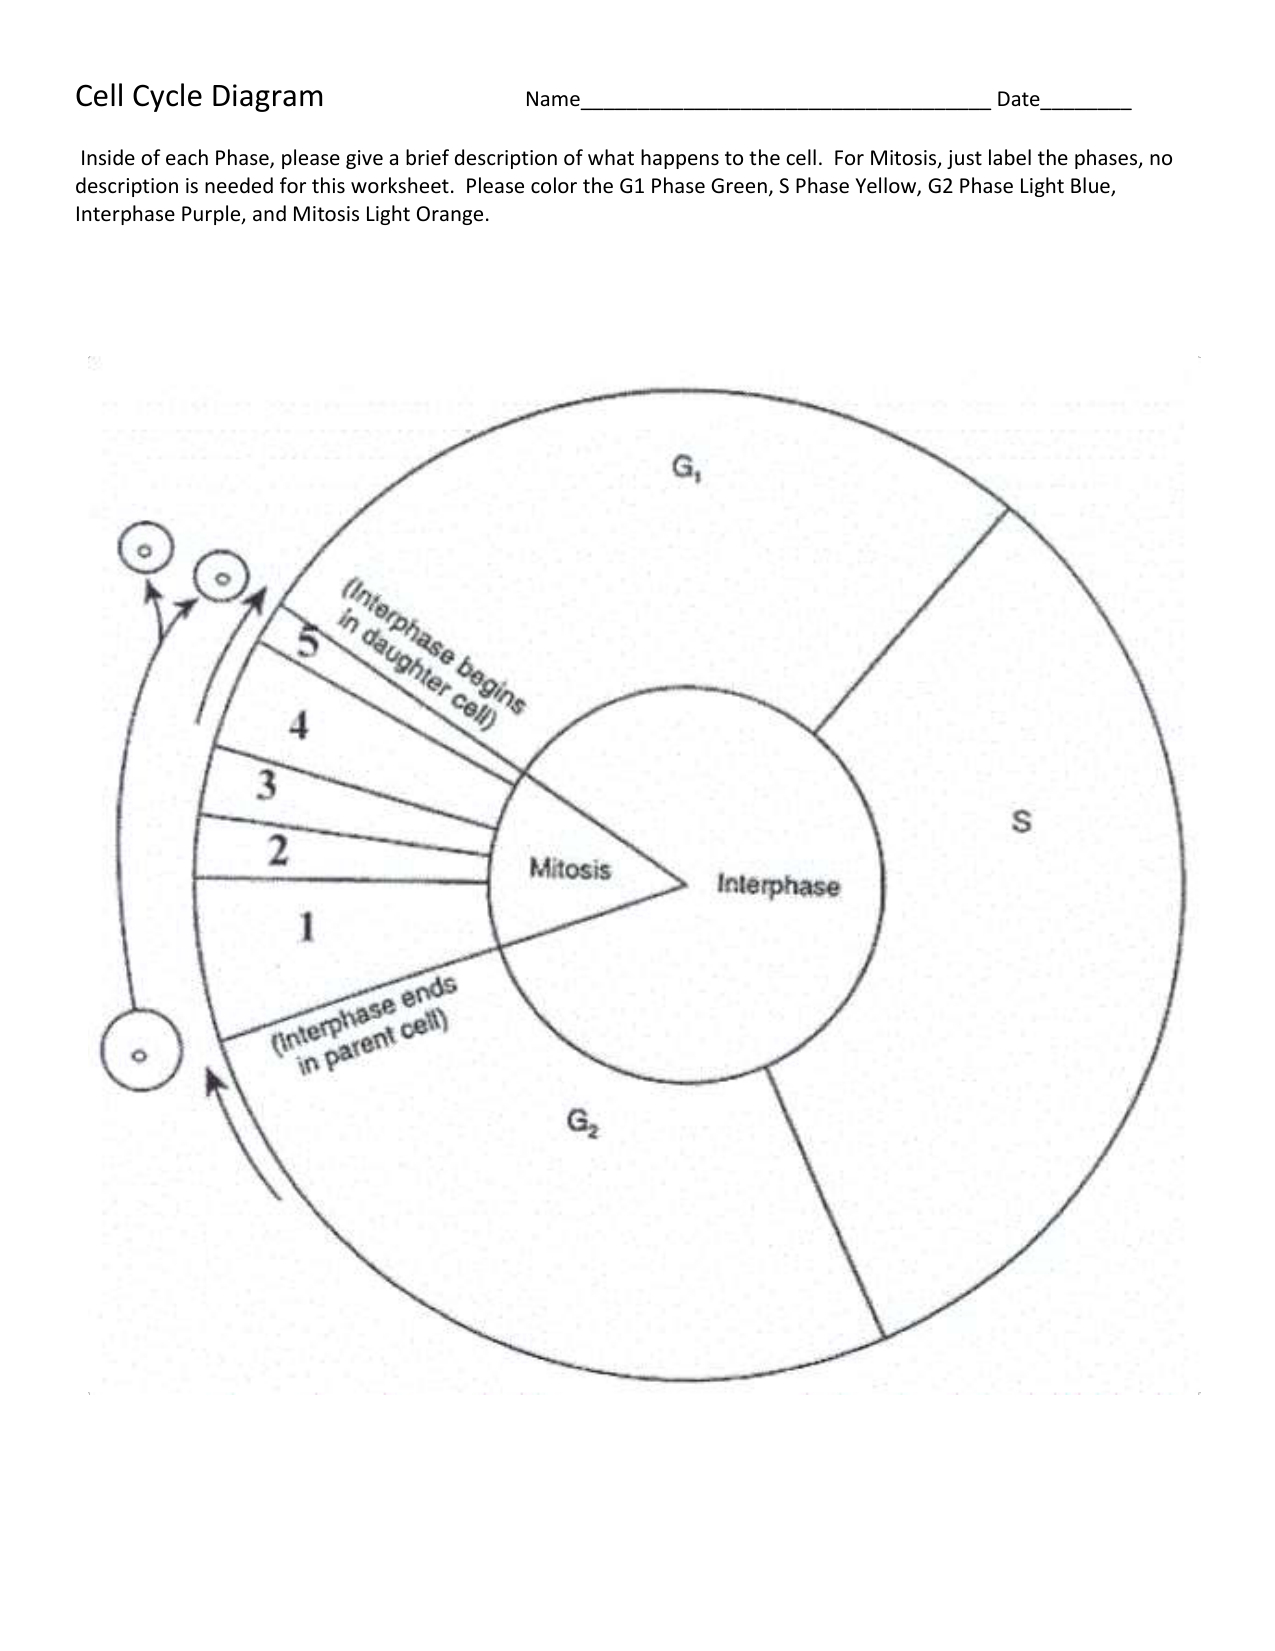 Cell Cycle Diagram Cell Cycle Diagram